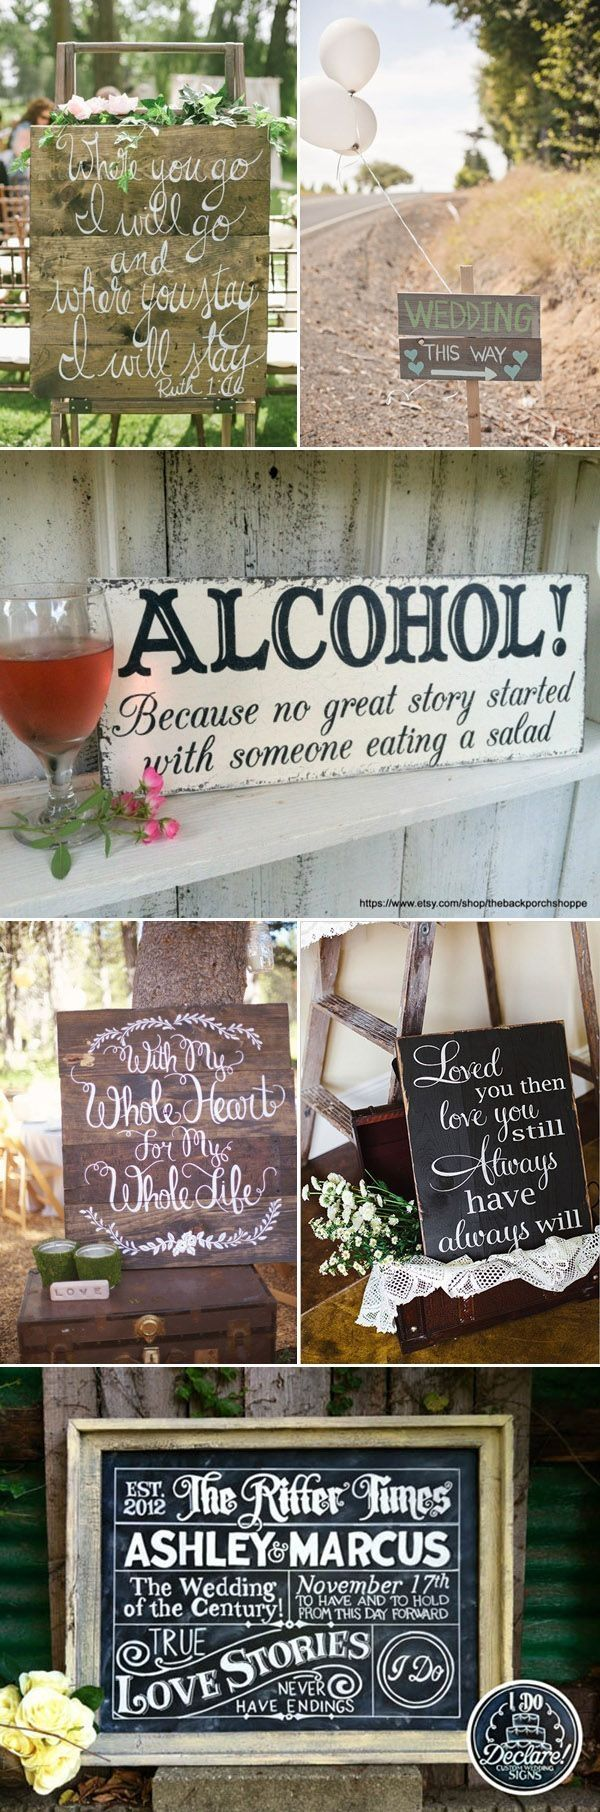 creative wedding sign ideas for country rustic weddings by carmen